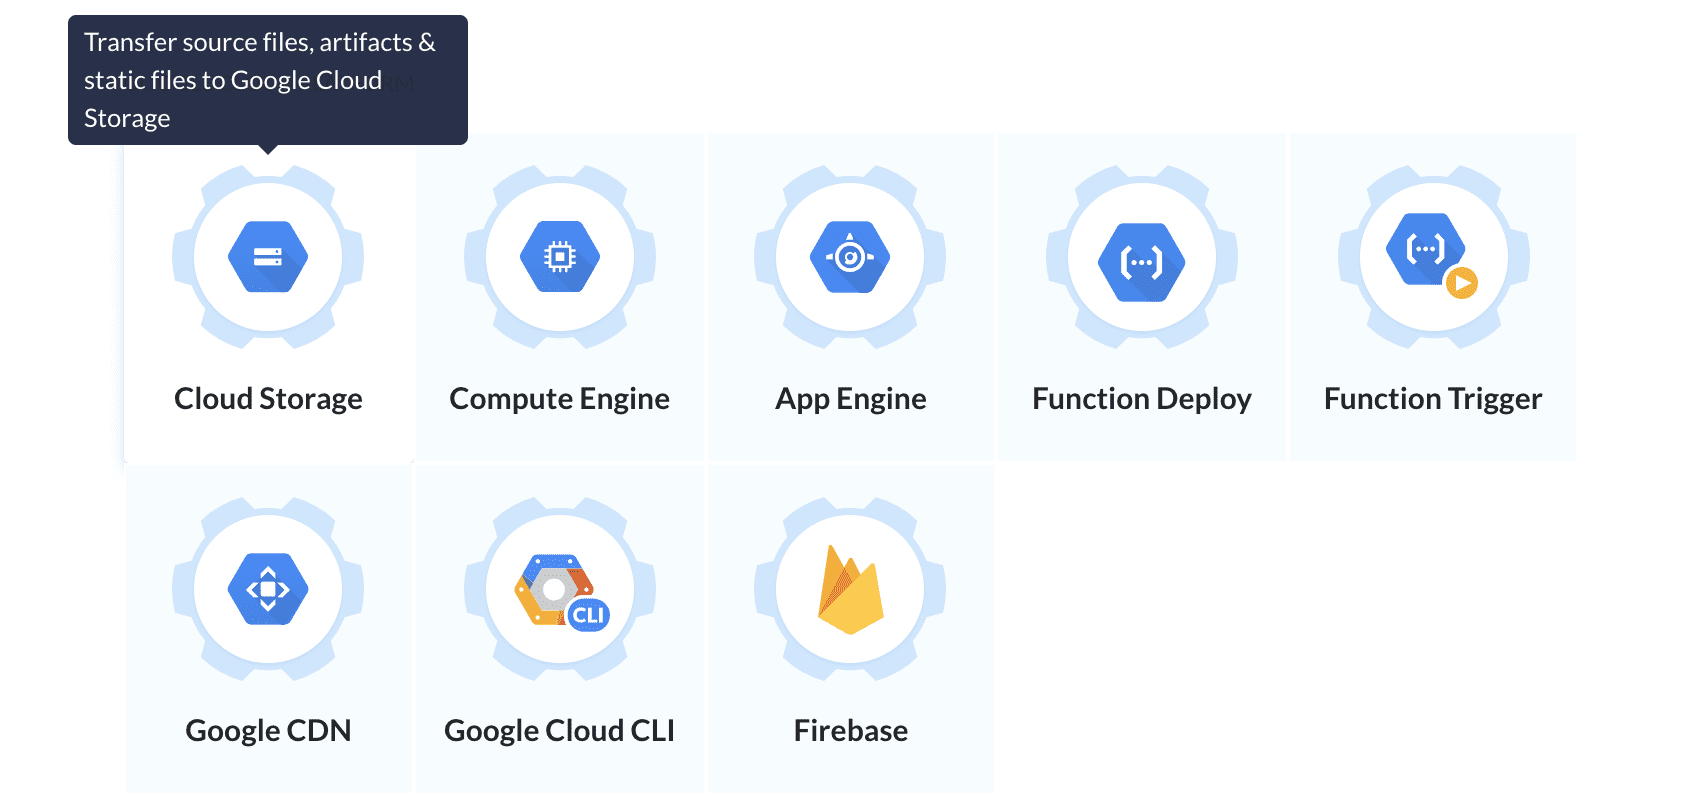 Google Cloud Platform actions